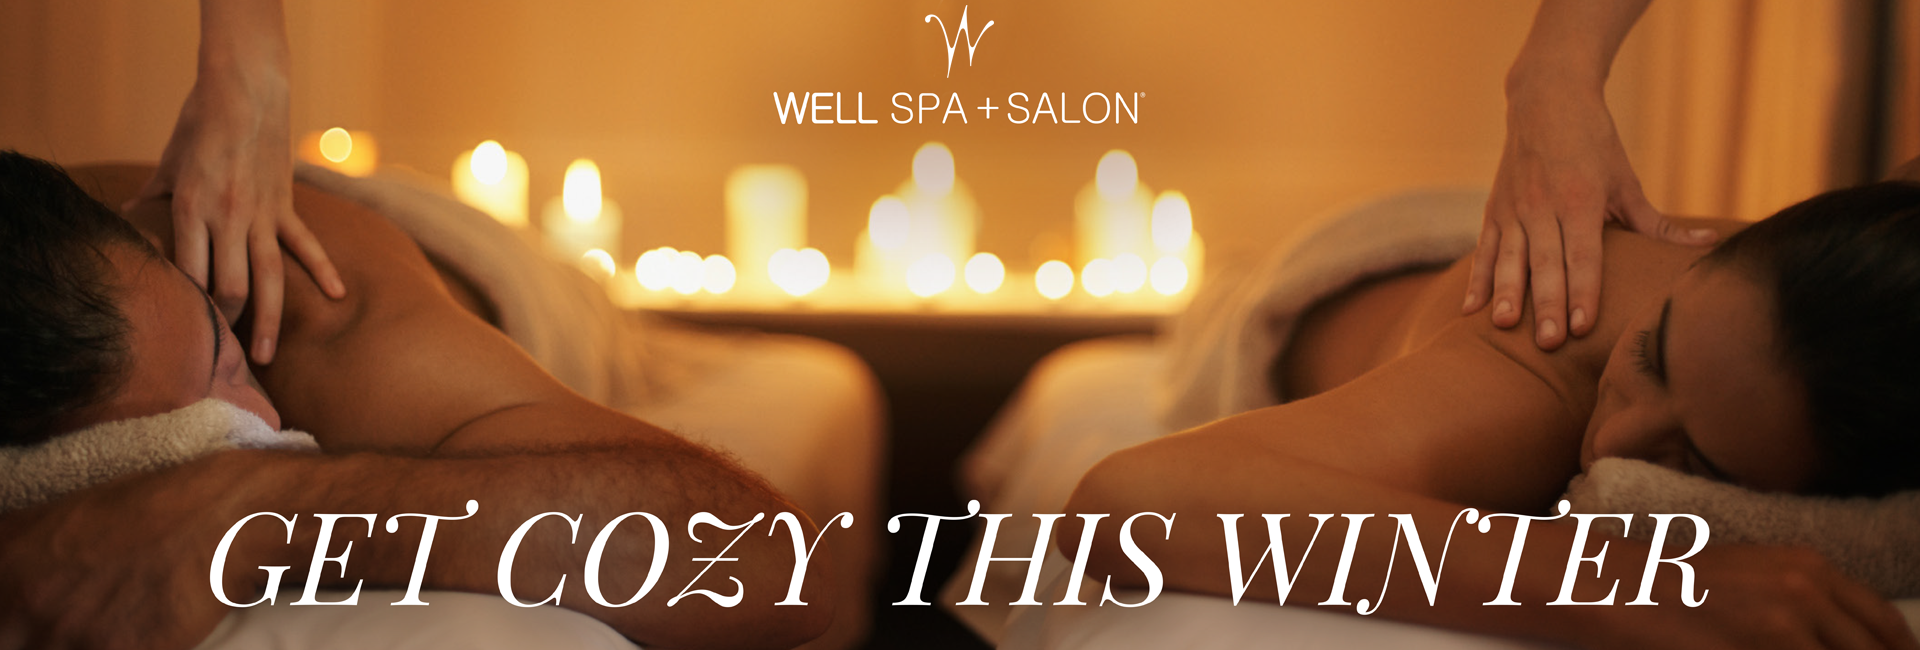 WELL Spa Specials